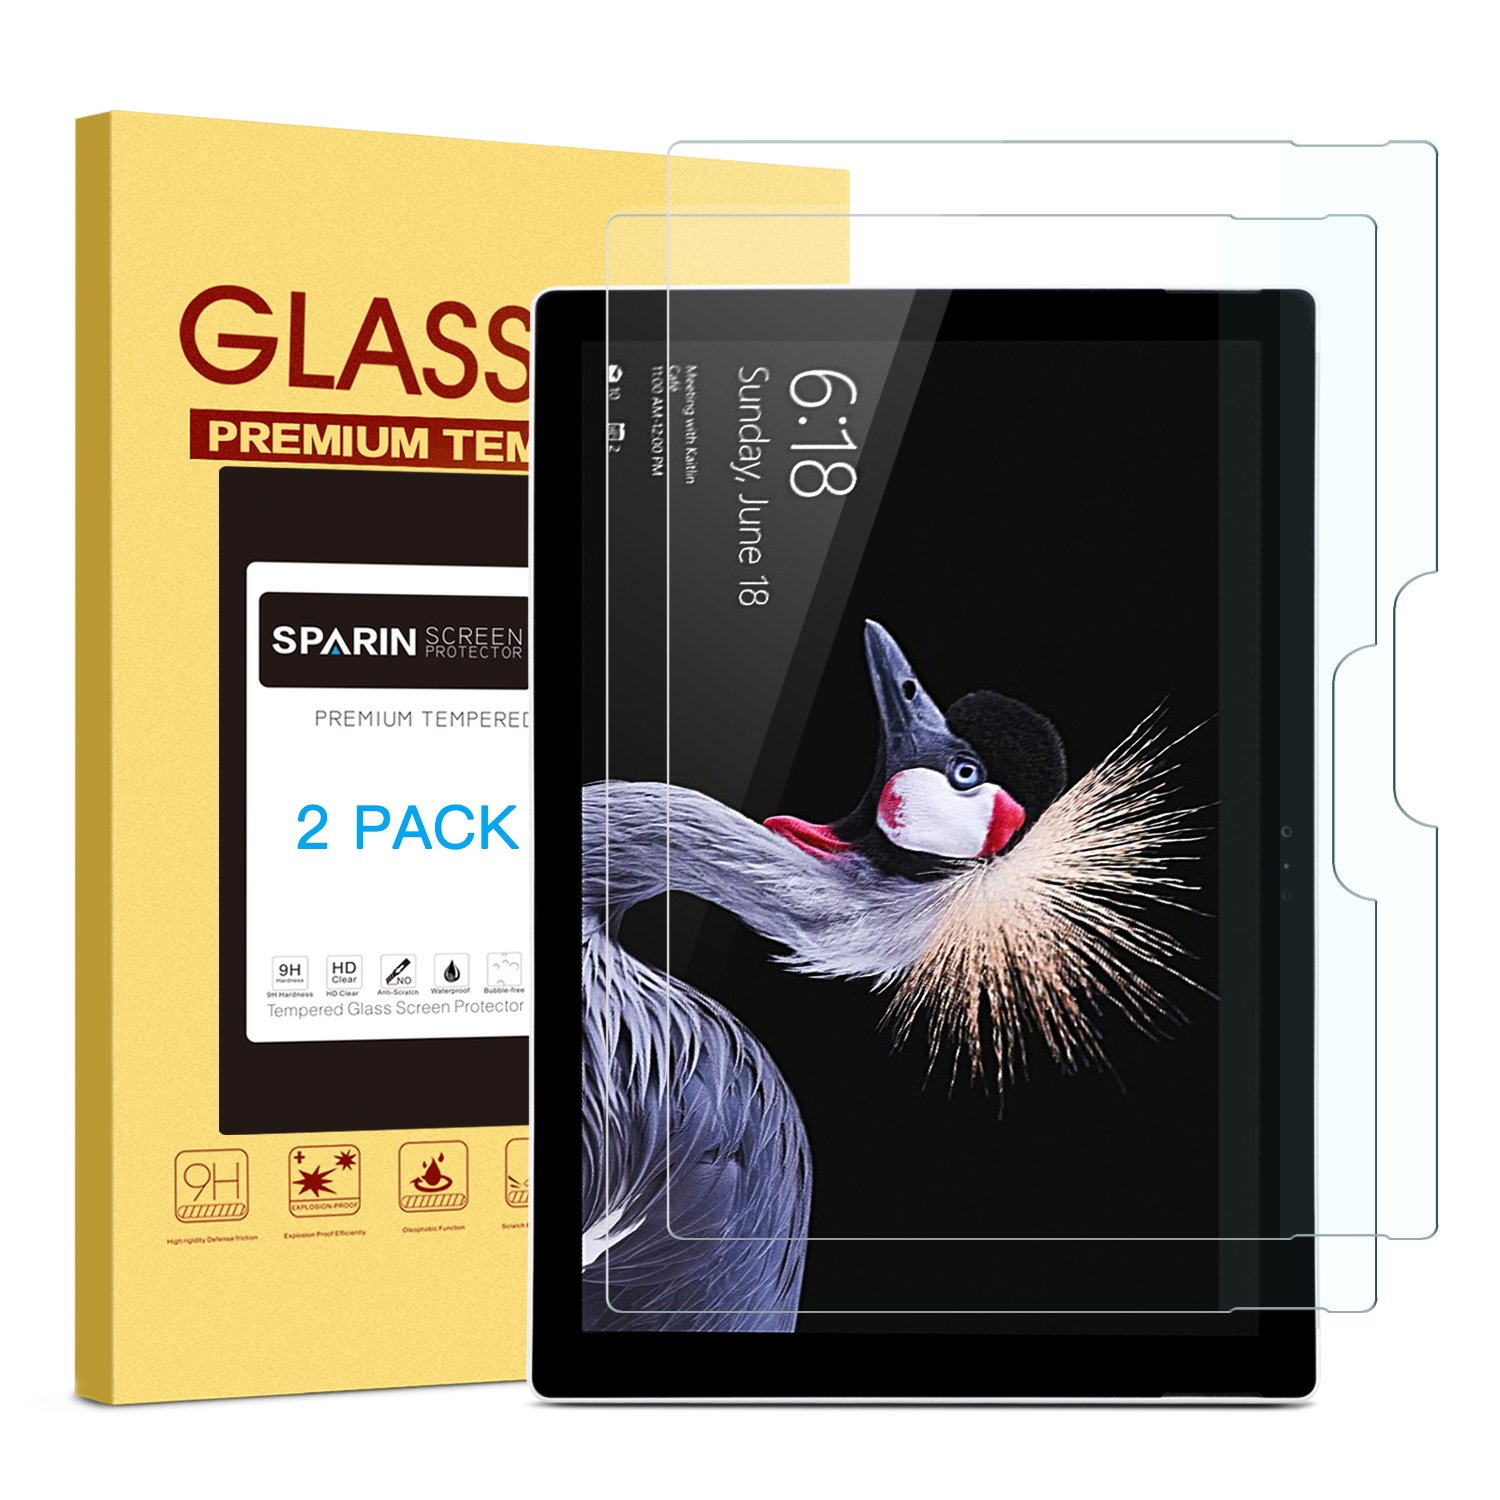 [2 PACK] 2017 New Surface Pro/Surface Pro 4 Screen Protector, SPARIN Tempered Glass Screen Protector with High Responsive/Bubble Free/Scratch Resistant